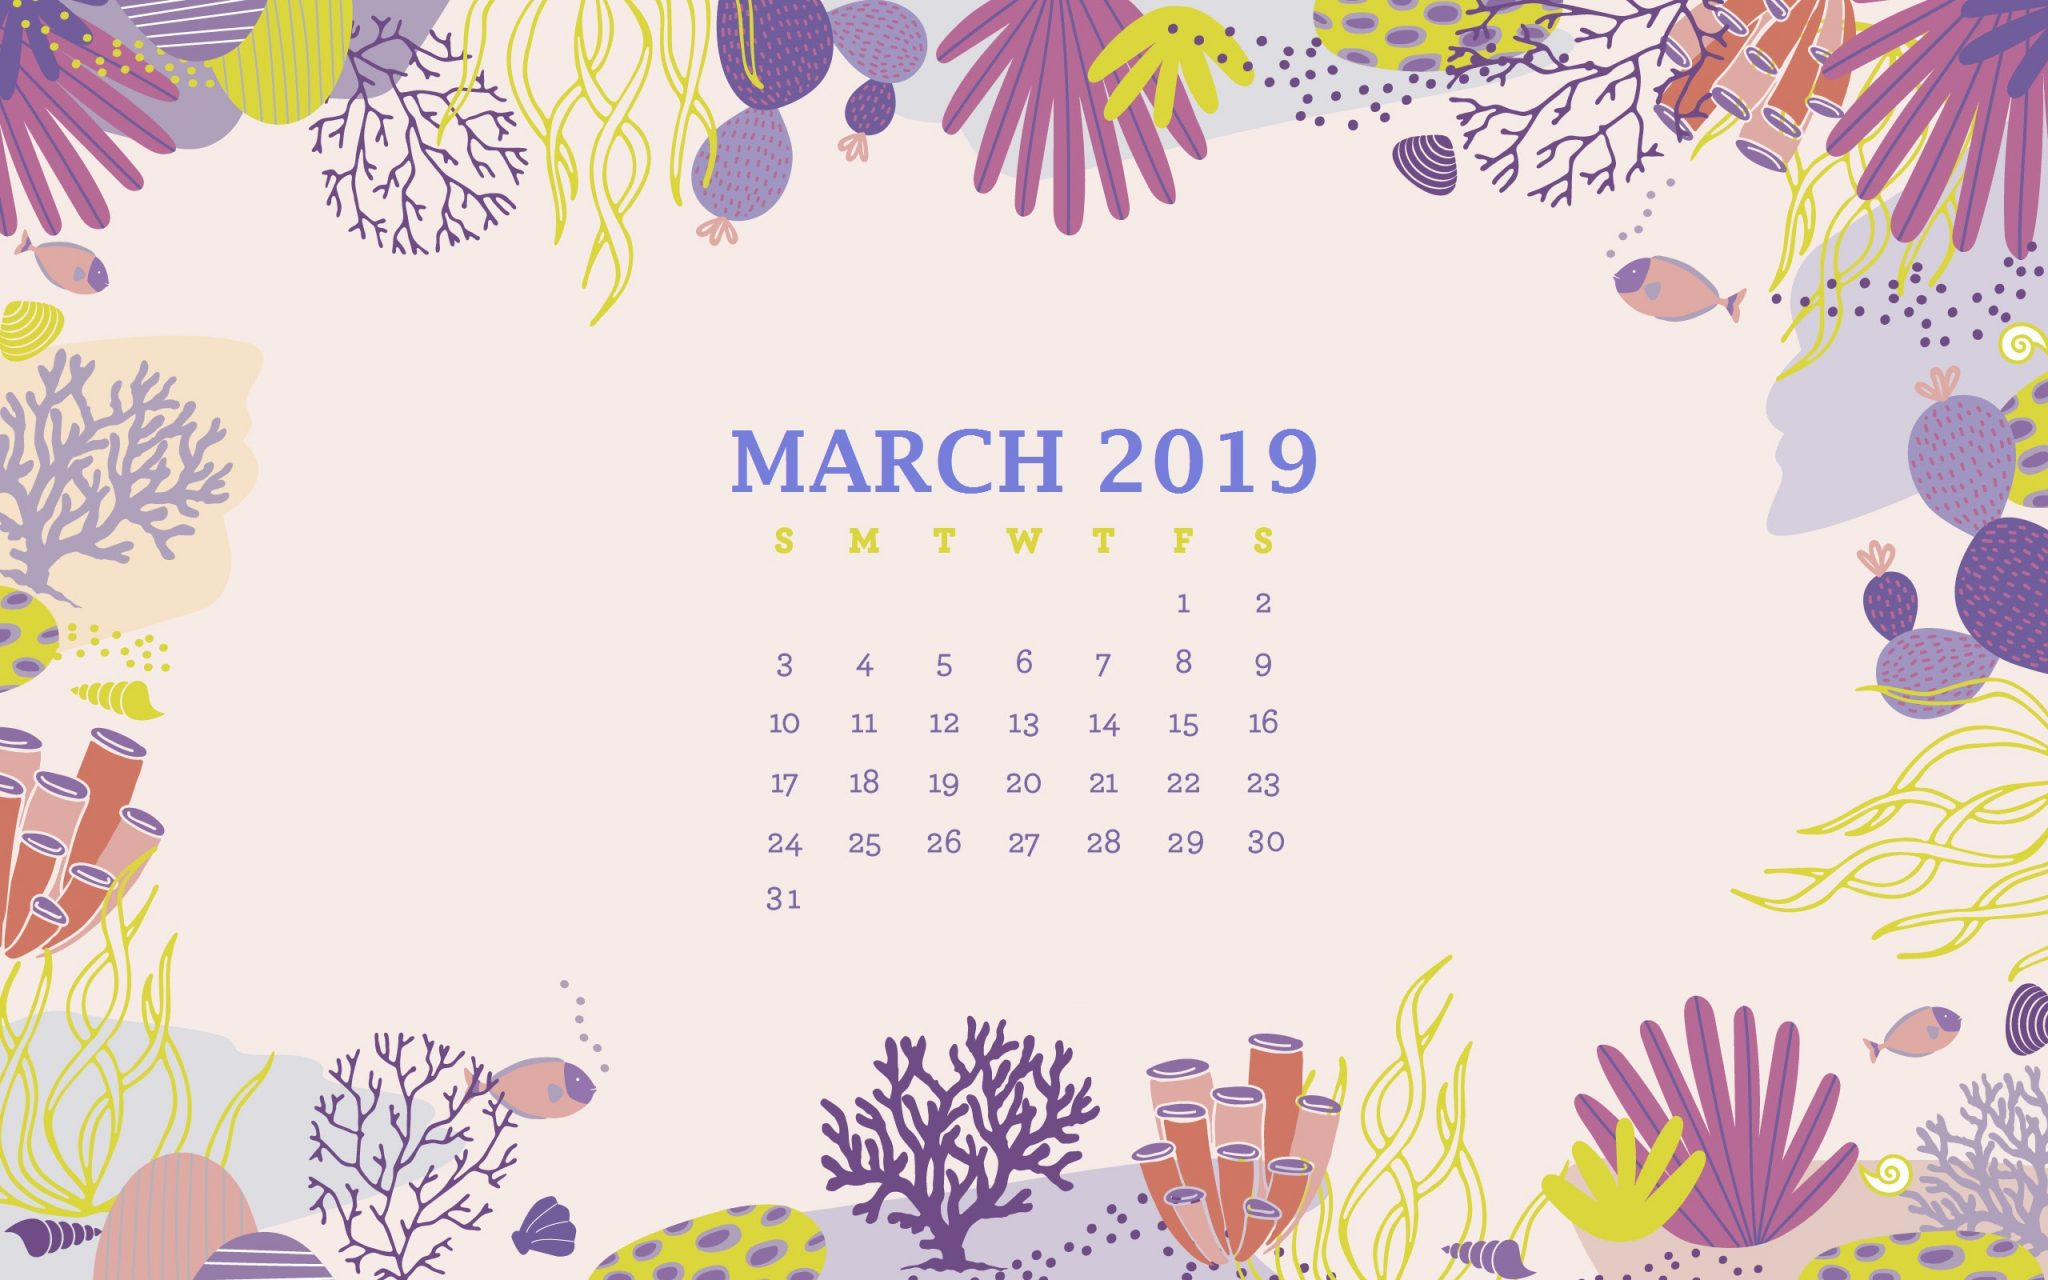 March 2019 Desktop Calendar Background